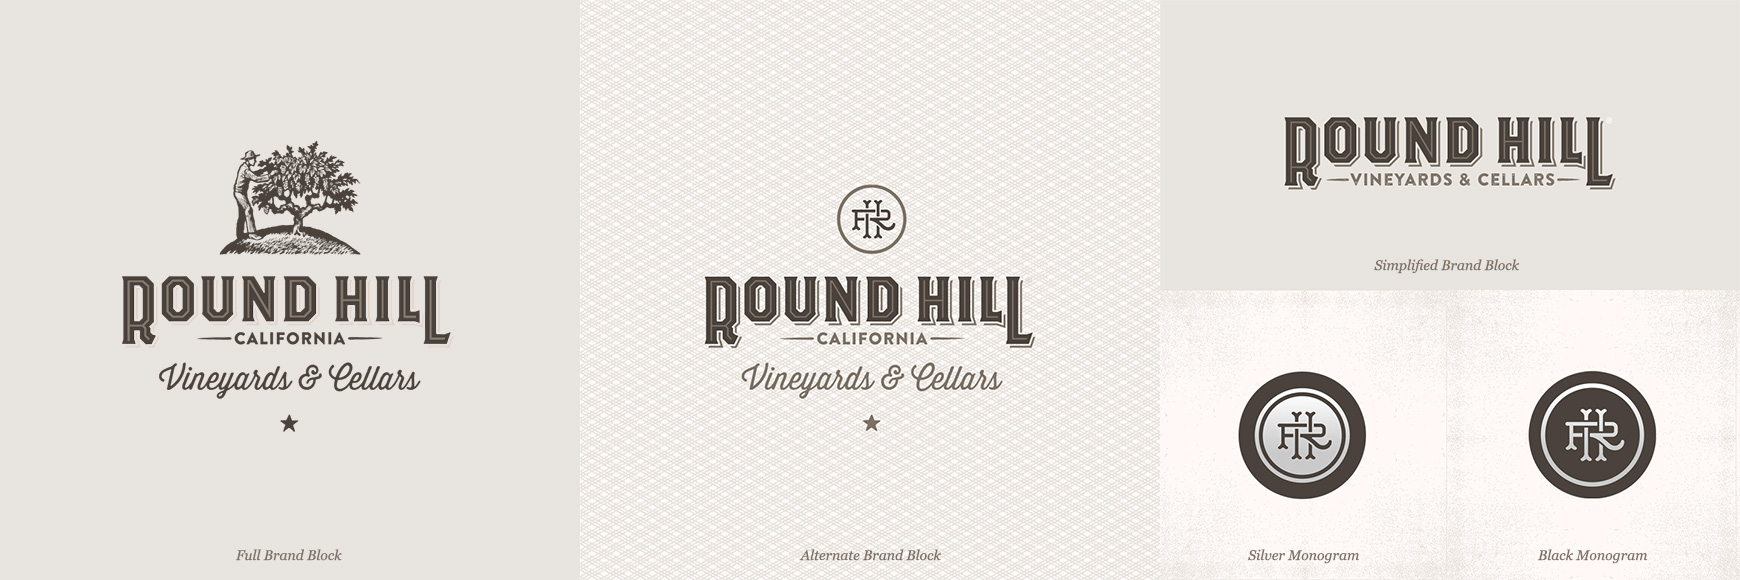 For the firm's refresh of Round Hill, they created visuals that would suit varying screen sizes and uses. The wood engravings were done by artist Chris Wormell.